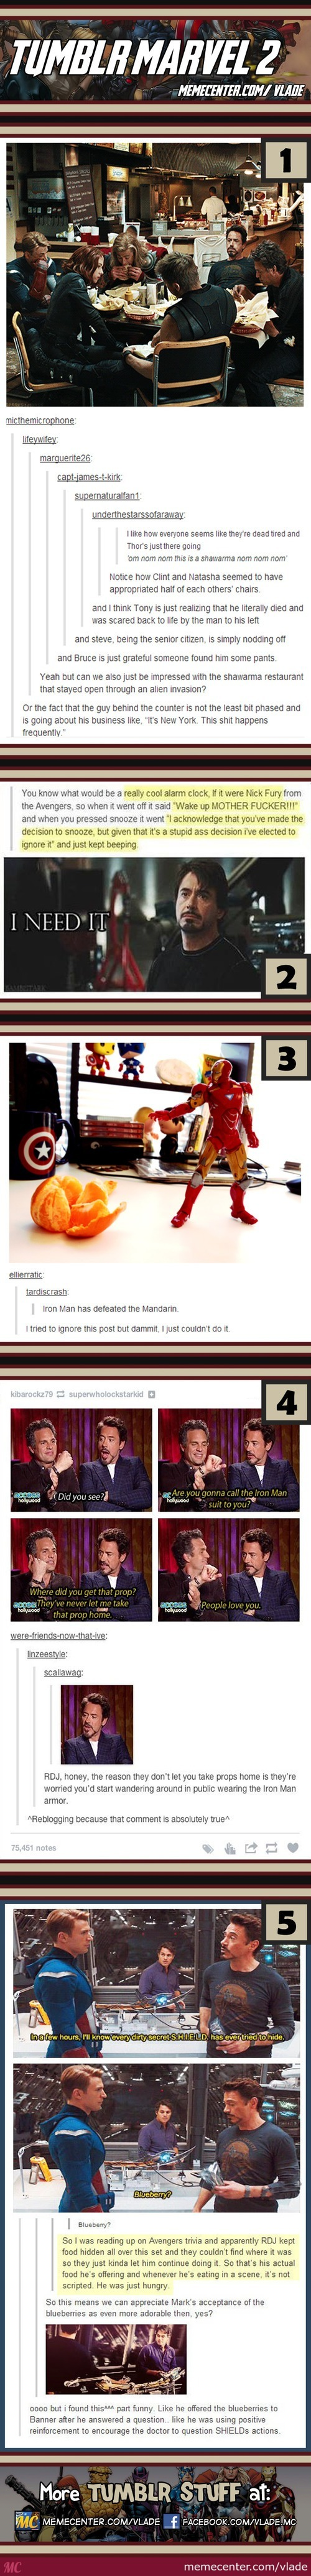 Tumblr Marvel #2